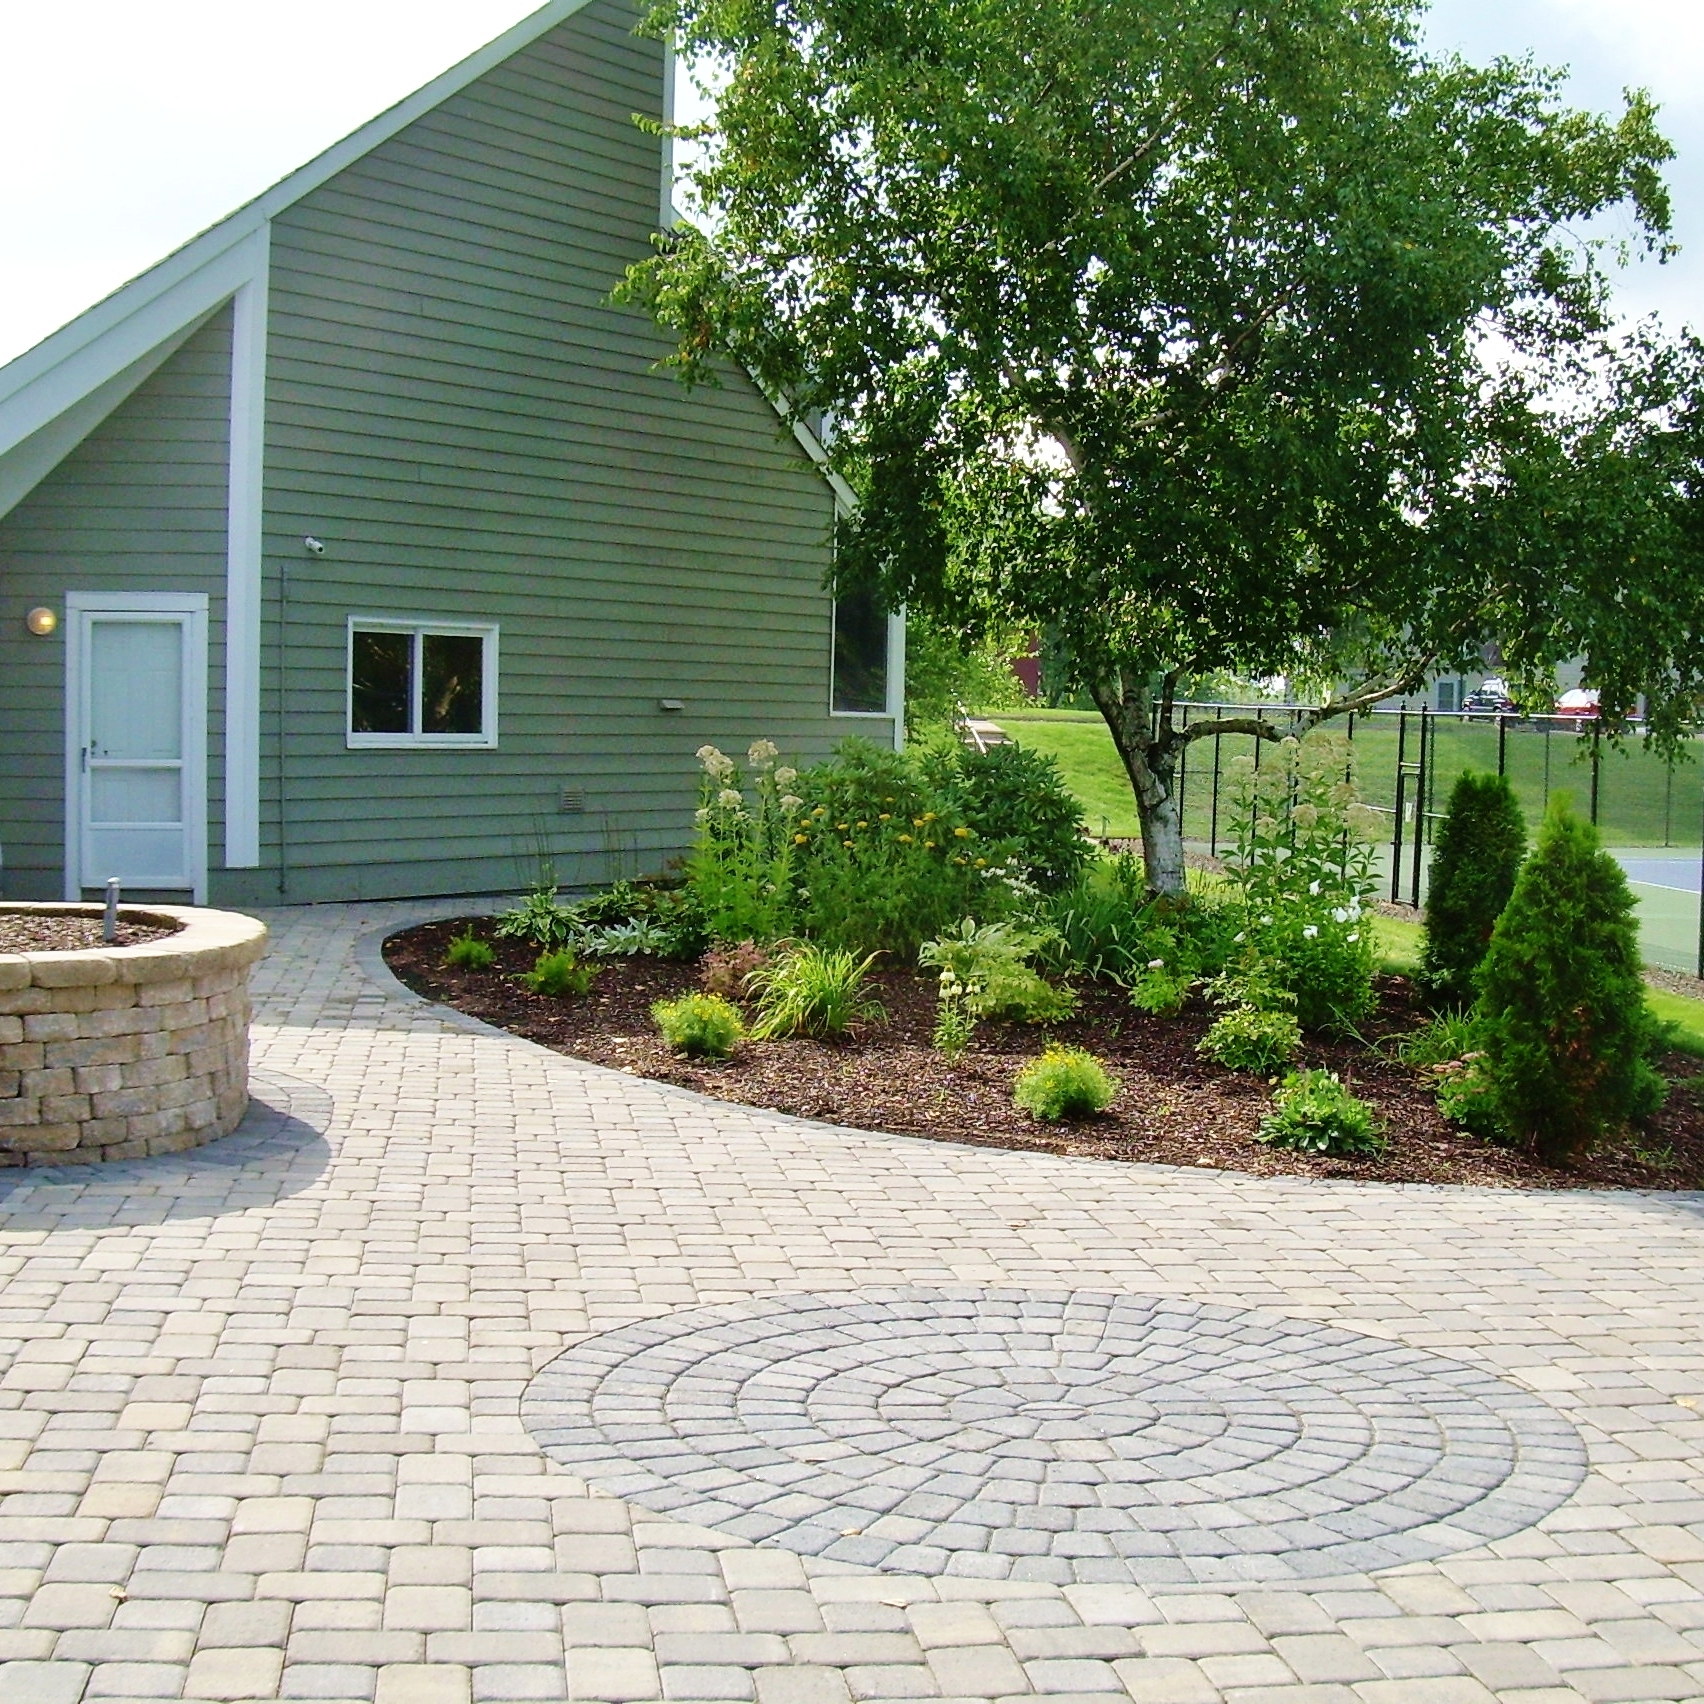 Paver Patio Construction and Bed Plantings